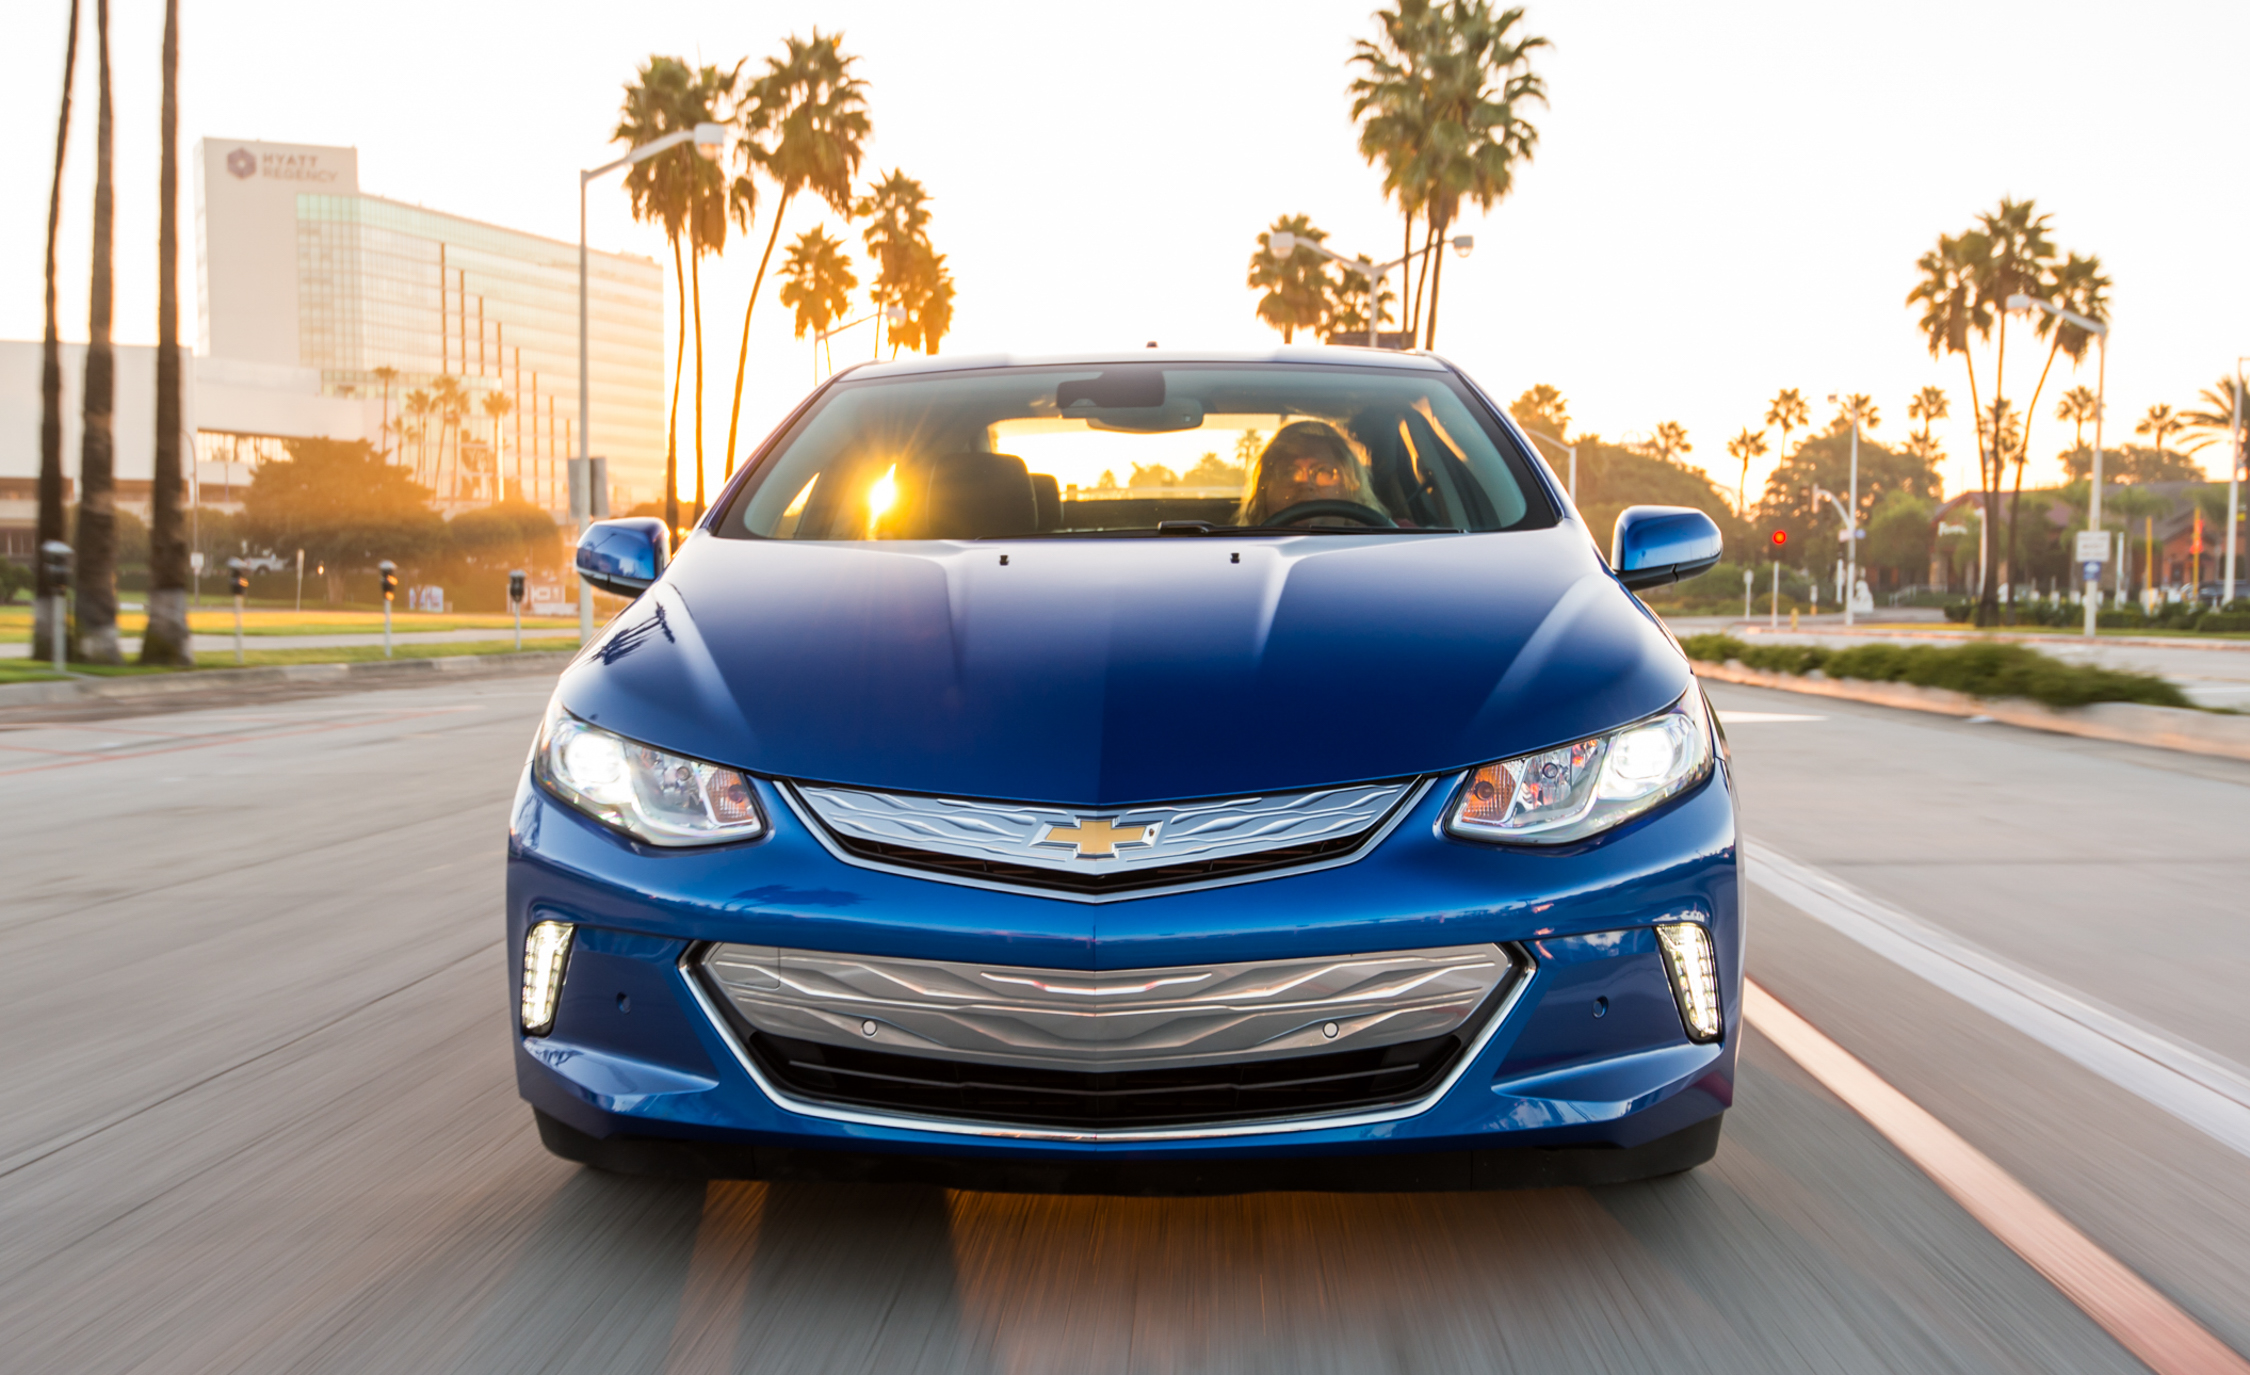 2017 Chevrolet Volt Test Drive Front View (View 1 of 16)